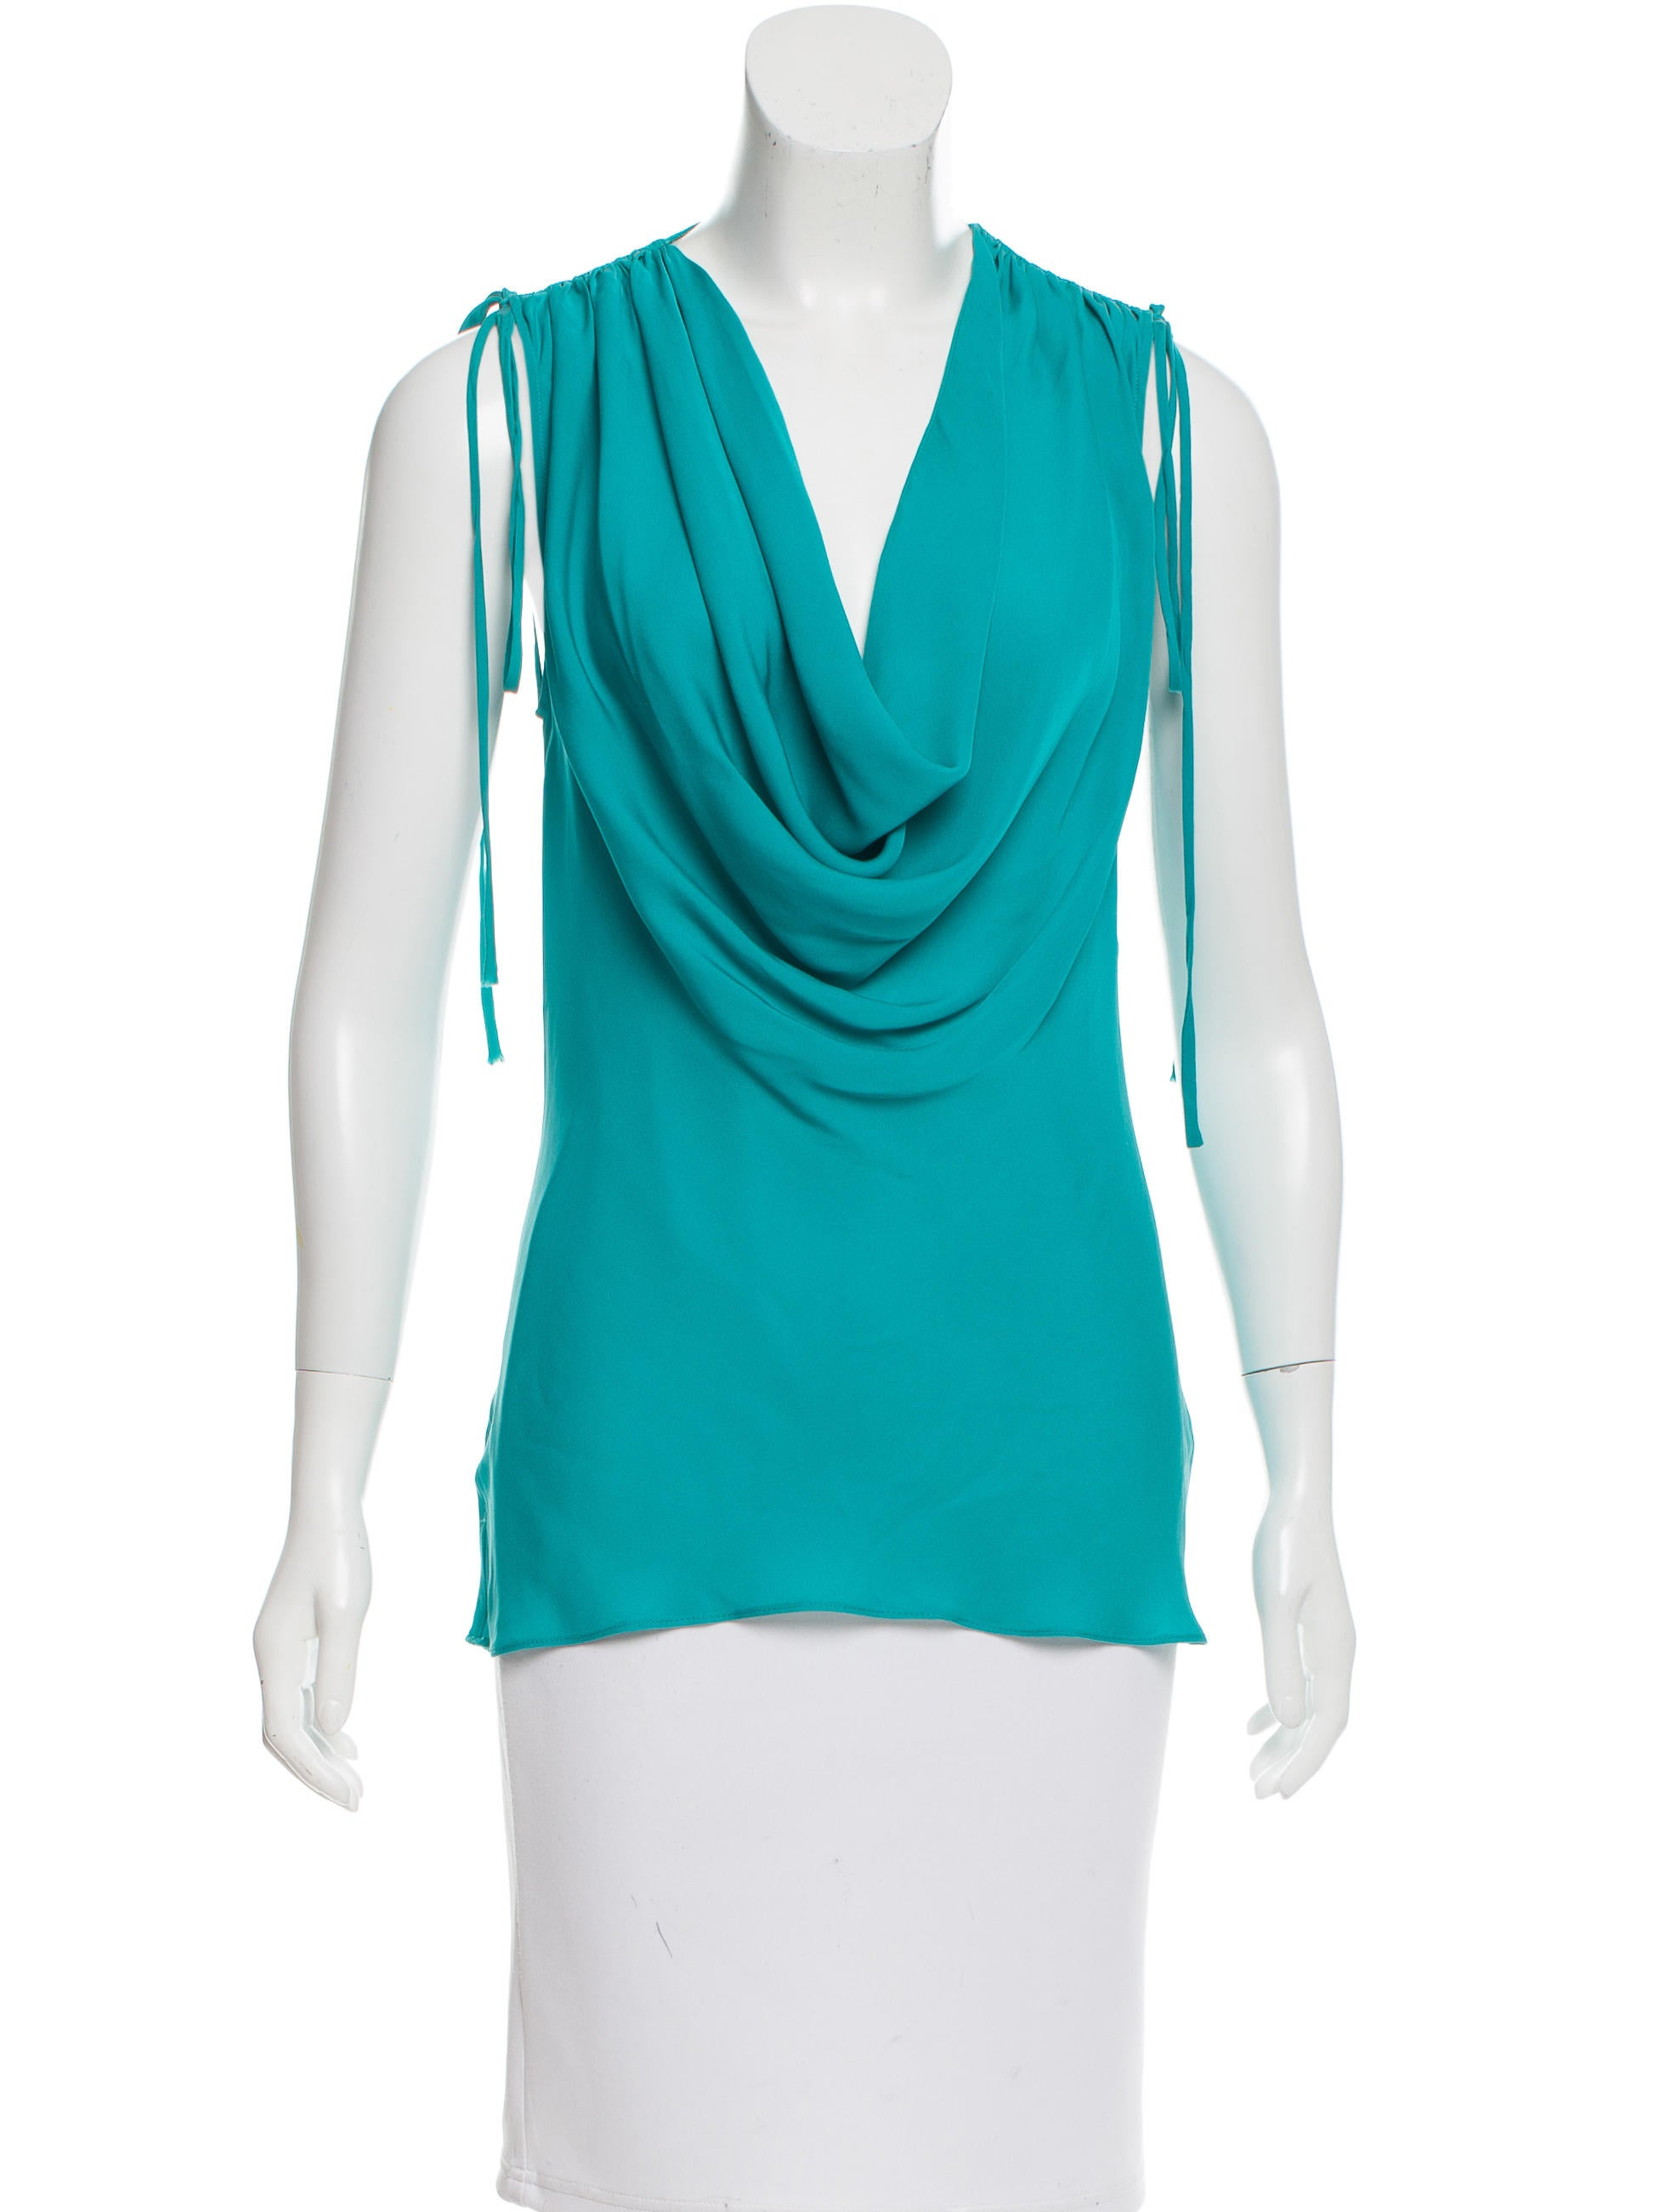 Robert Rodriguez Silk Cowl Neck Top Clothing Wrr28879 The Realreal